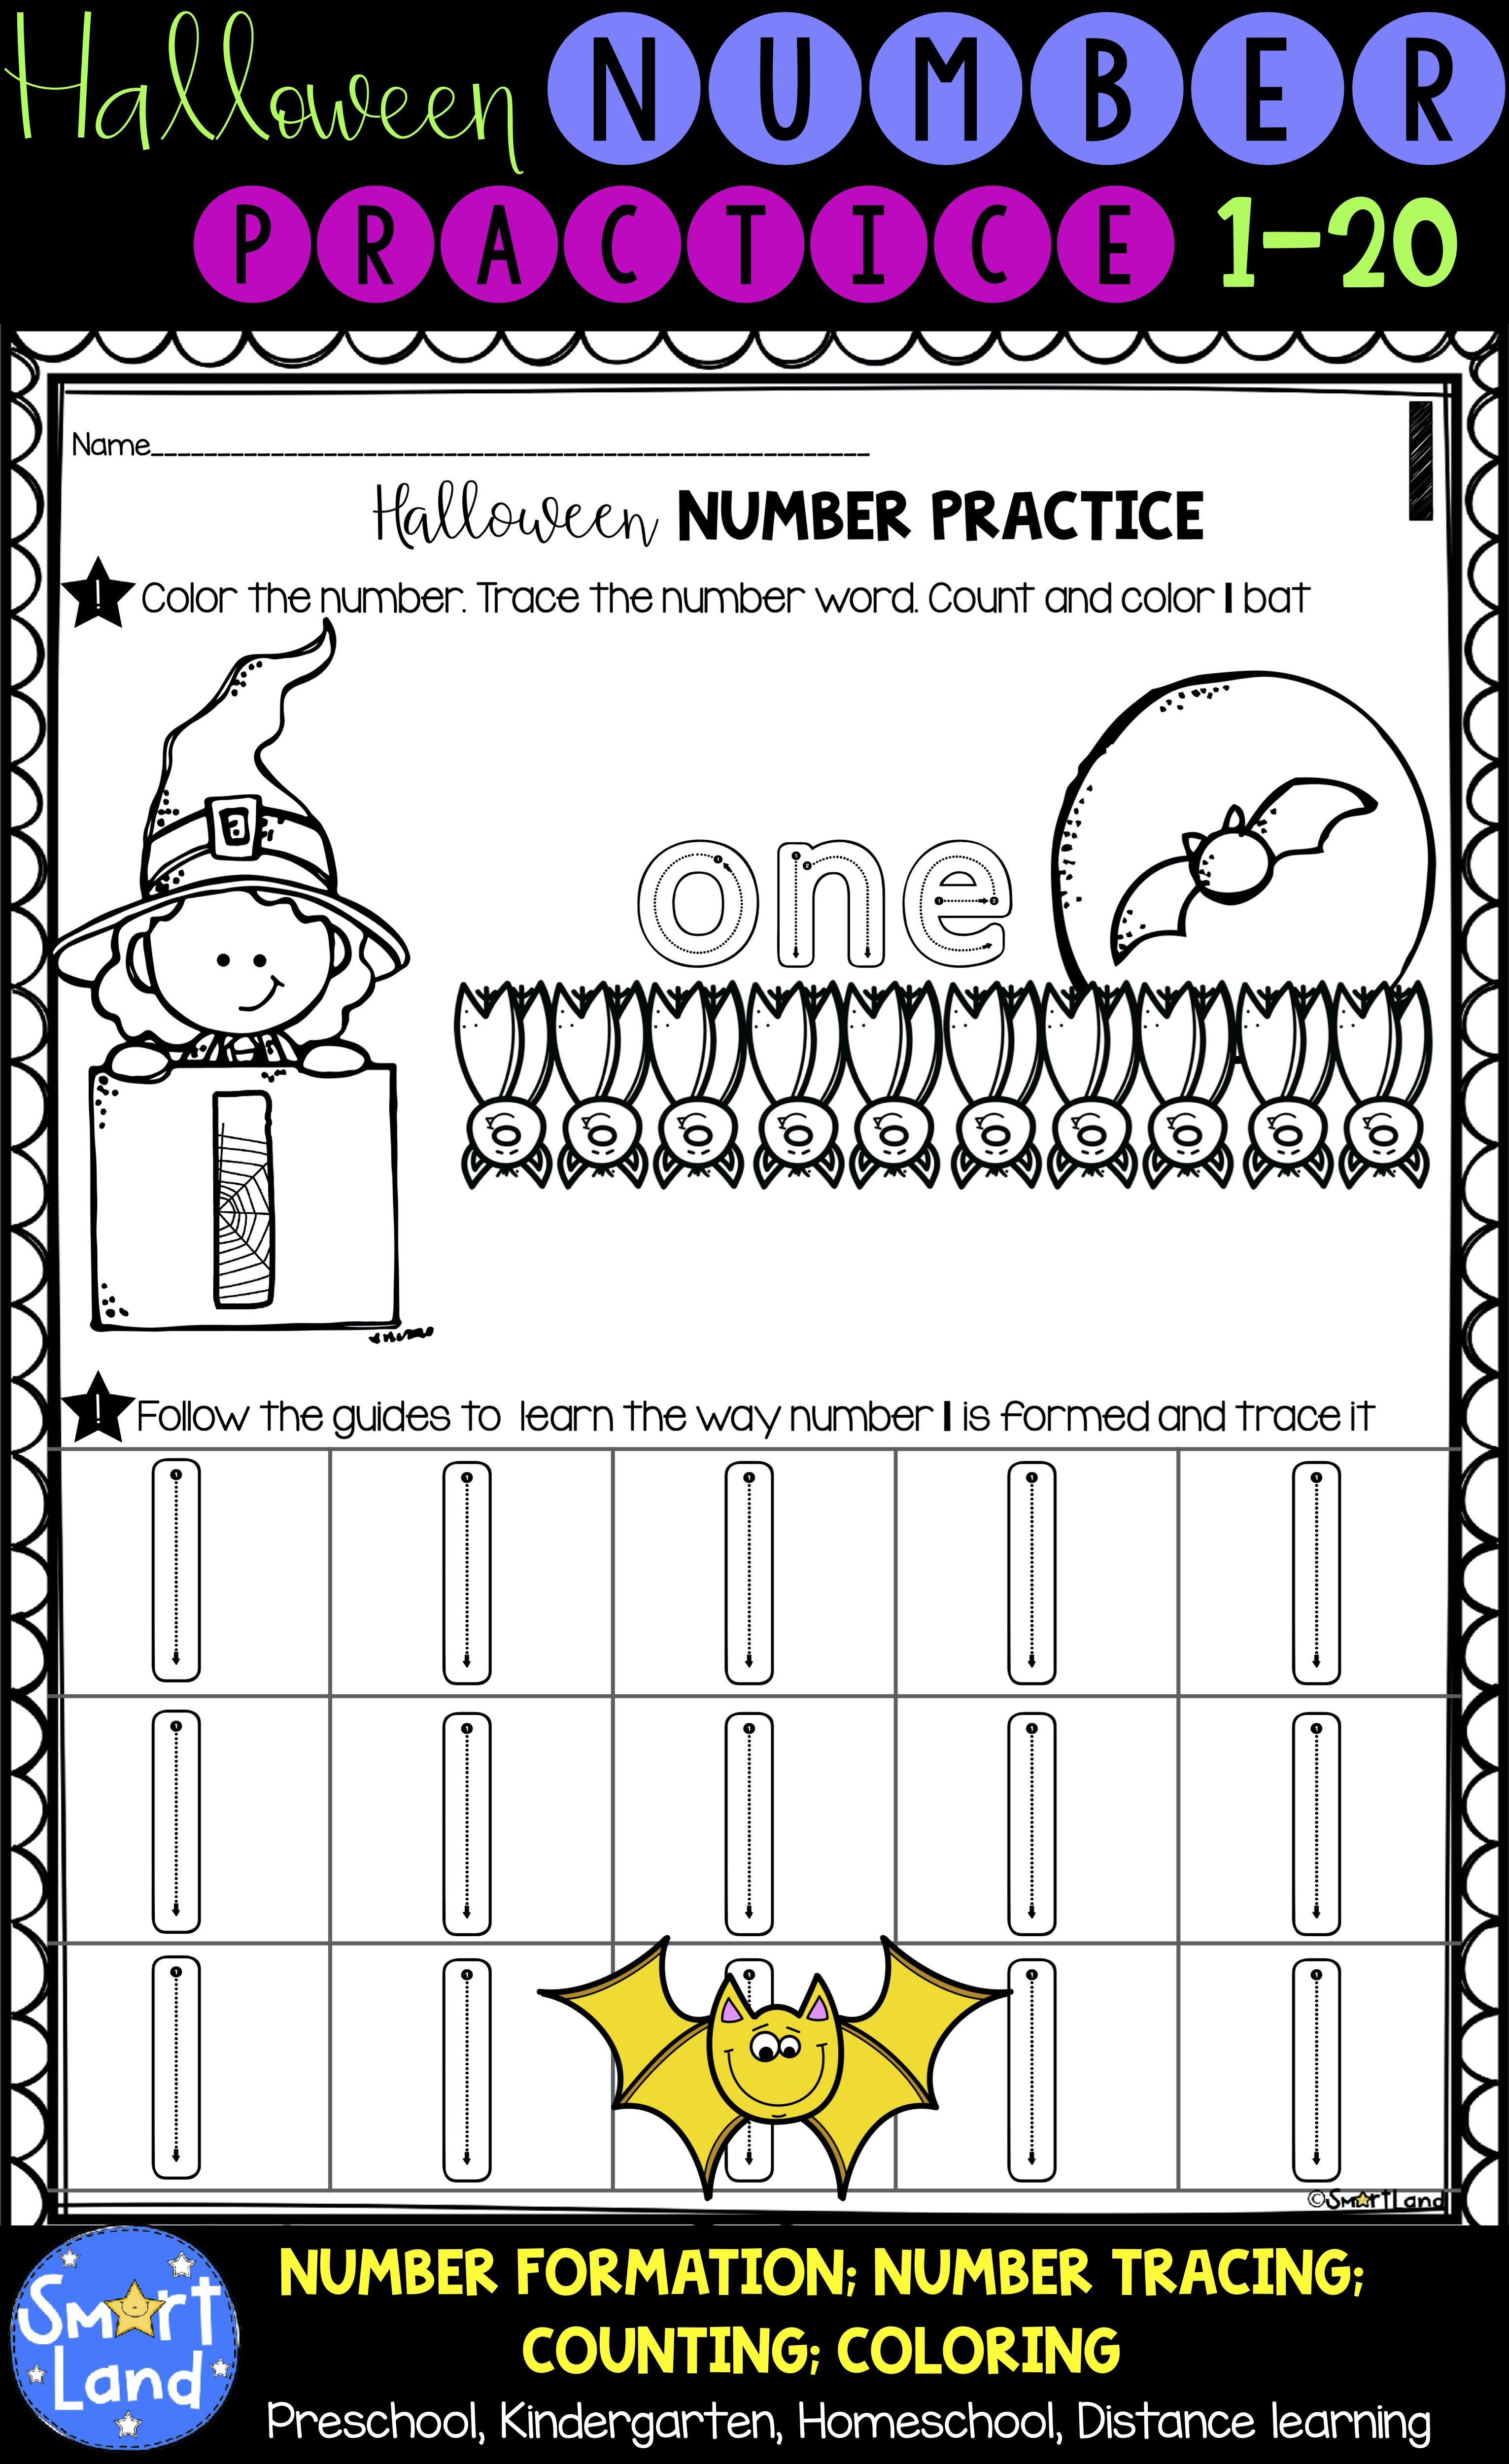 Halloween Numbers 1 20 Handwriting And Counting Worksheets Fall Preschool Activities Free Math Lessons Distance Learning [ 5000 x 3062 Pixel ]